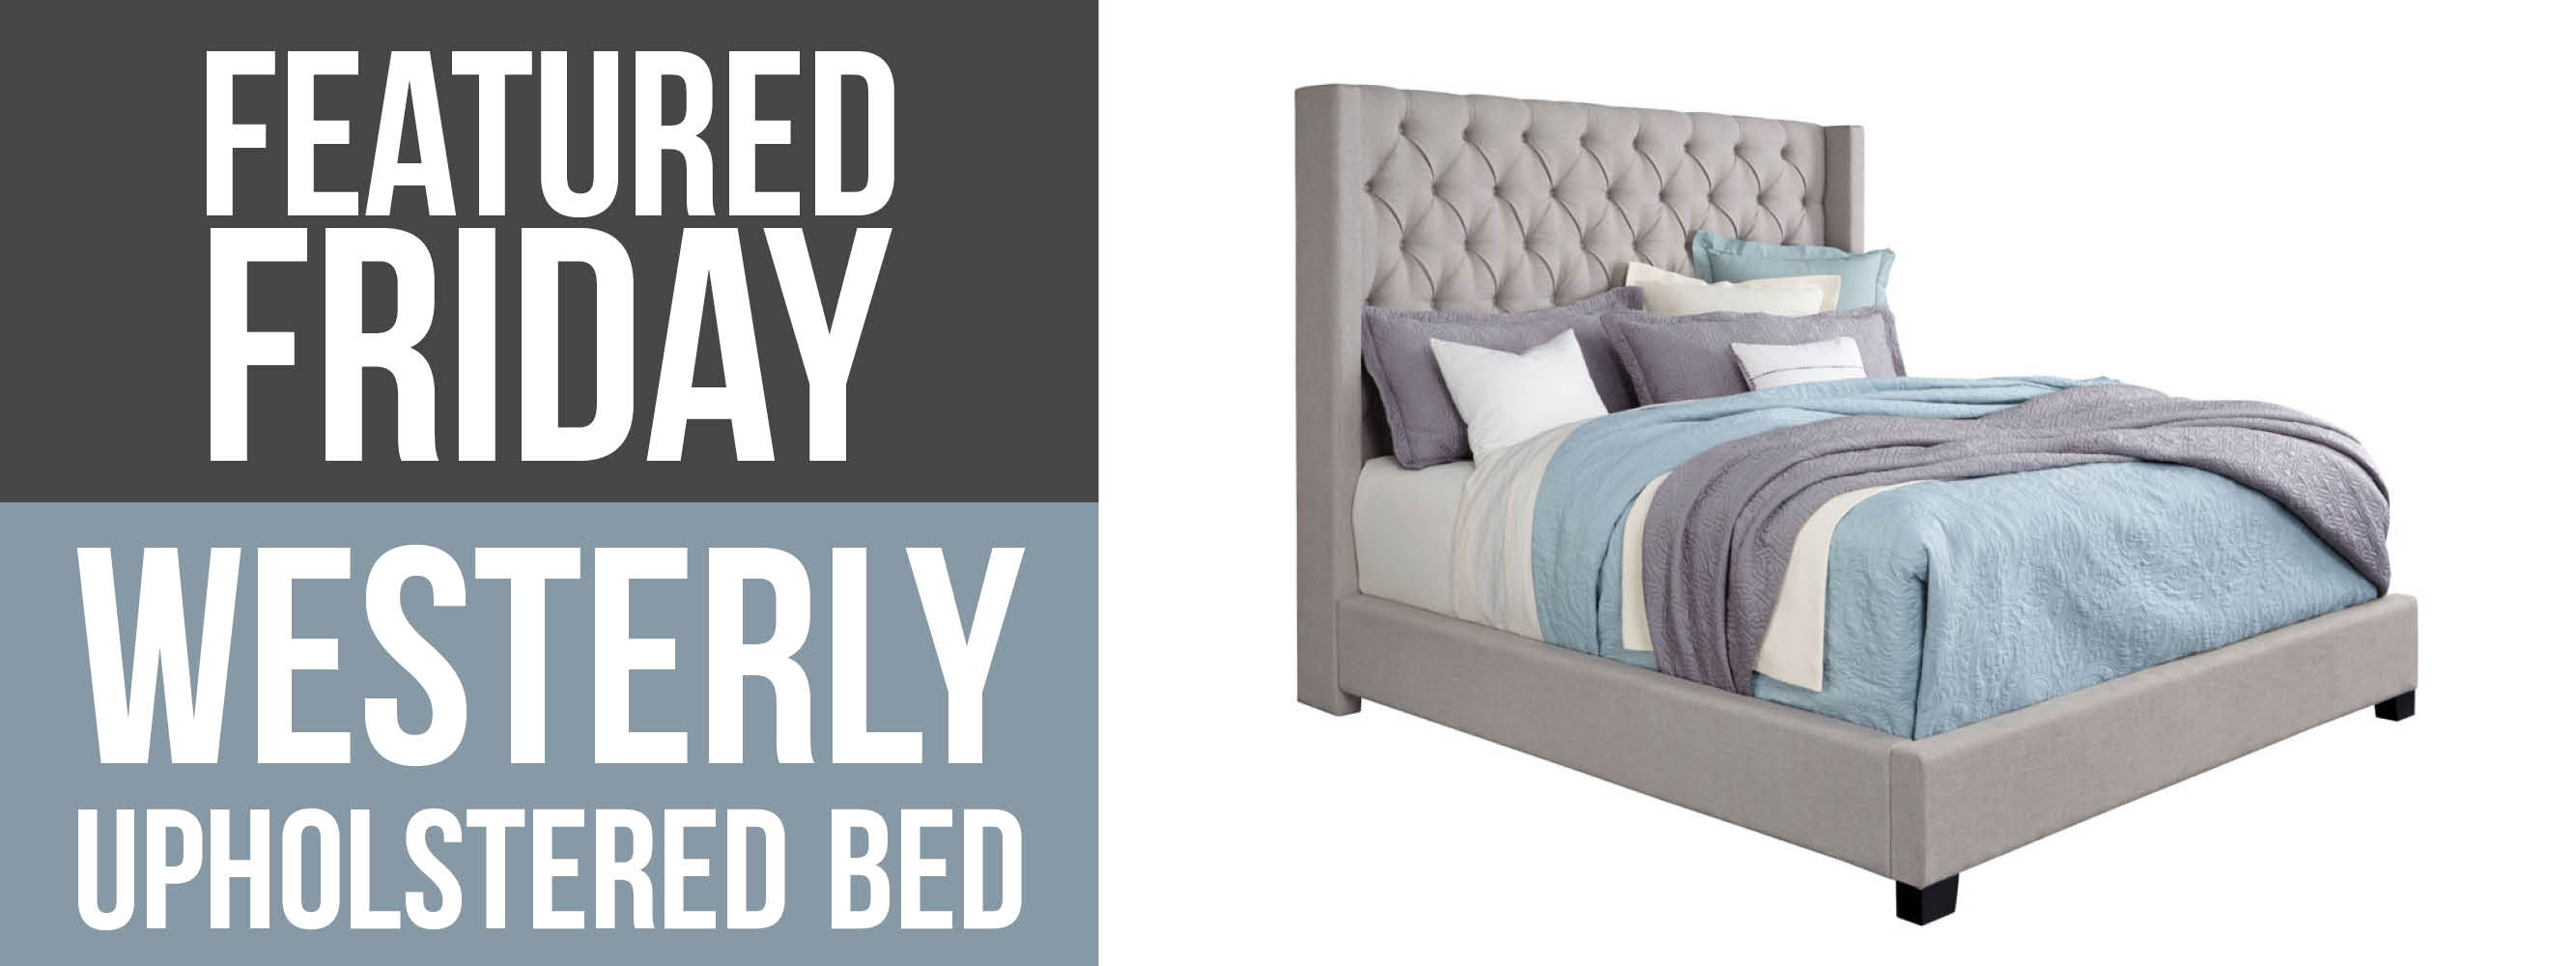 Westerly Upholstered Bed Featured Friday